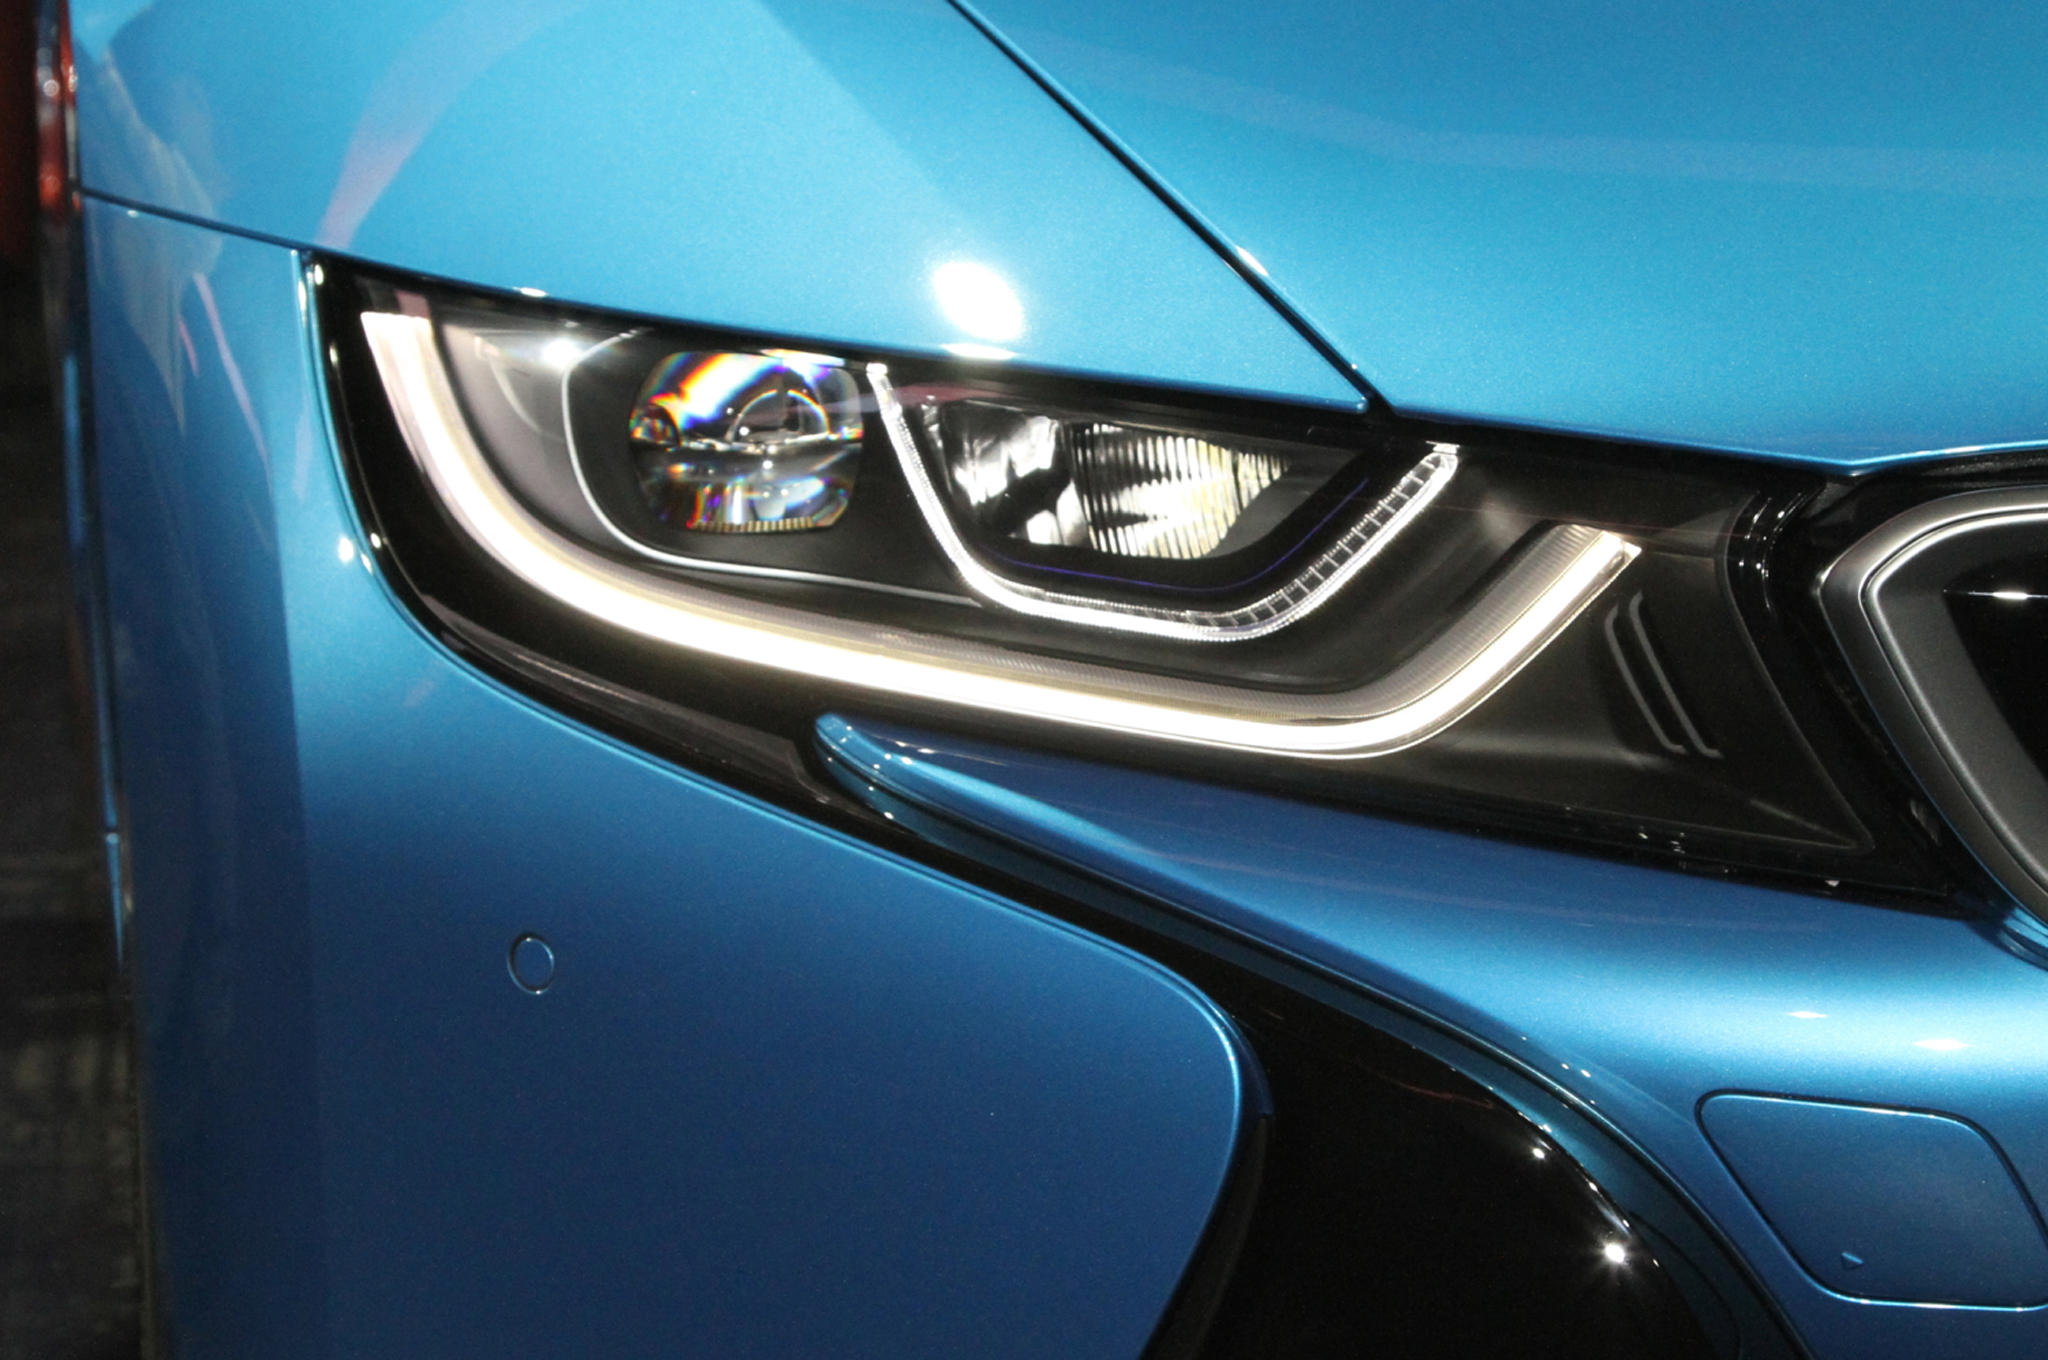 2014 BMW i8 plug in hybrid headlight